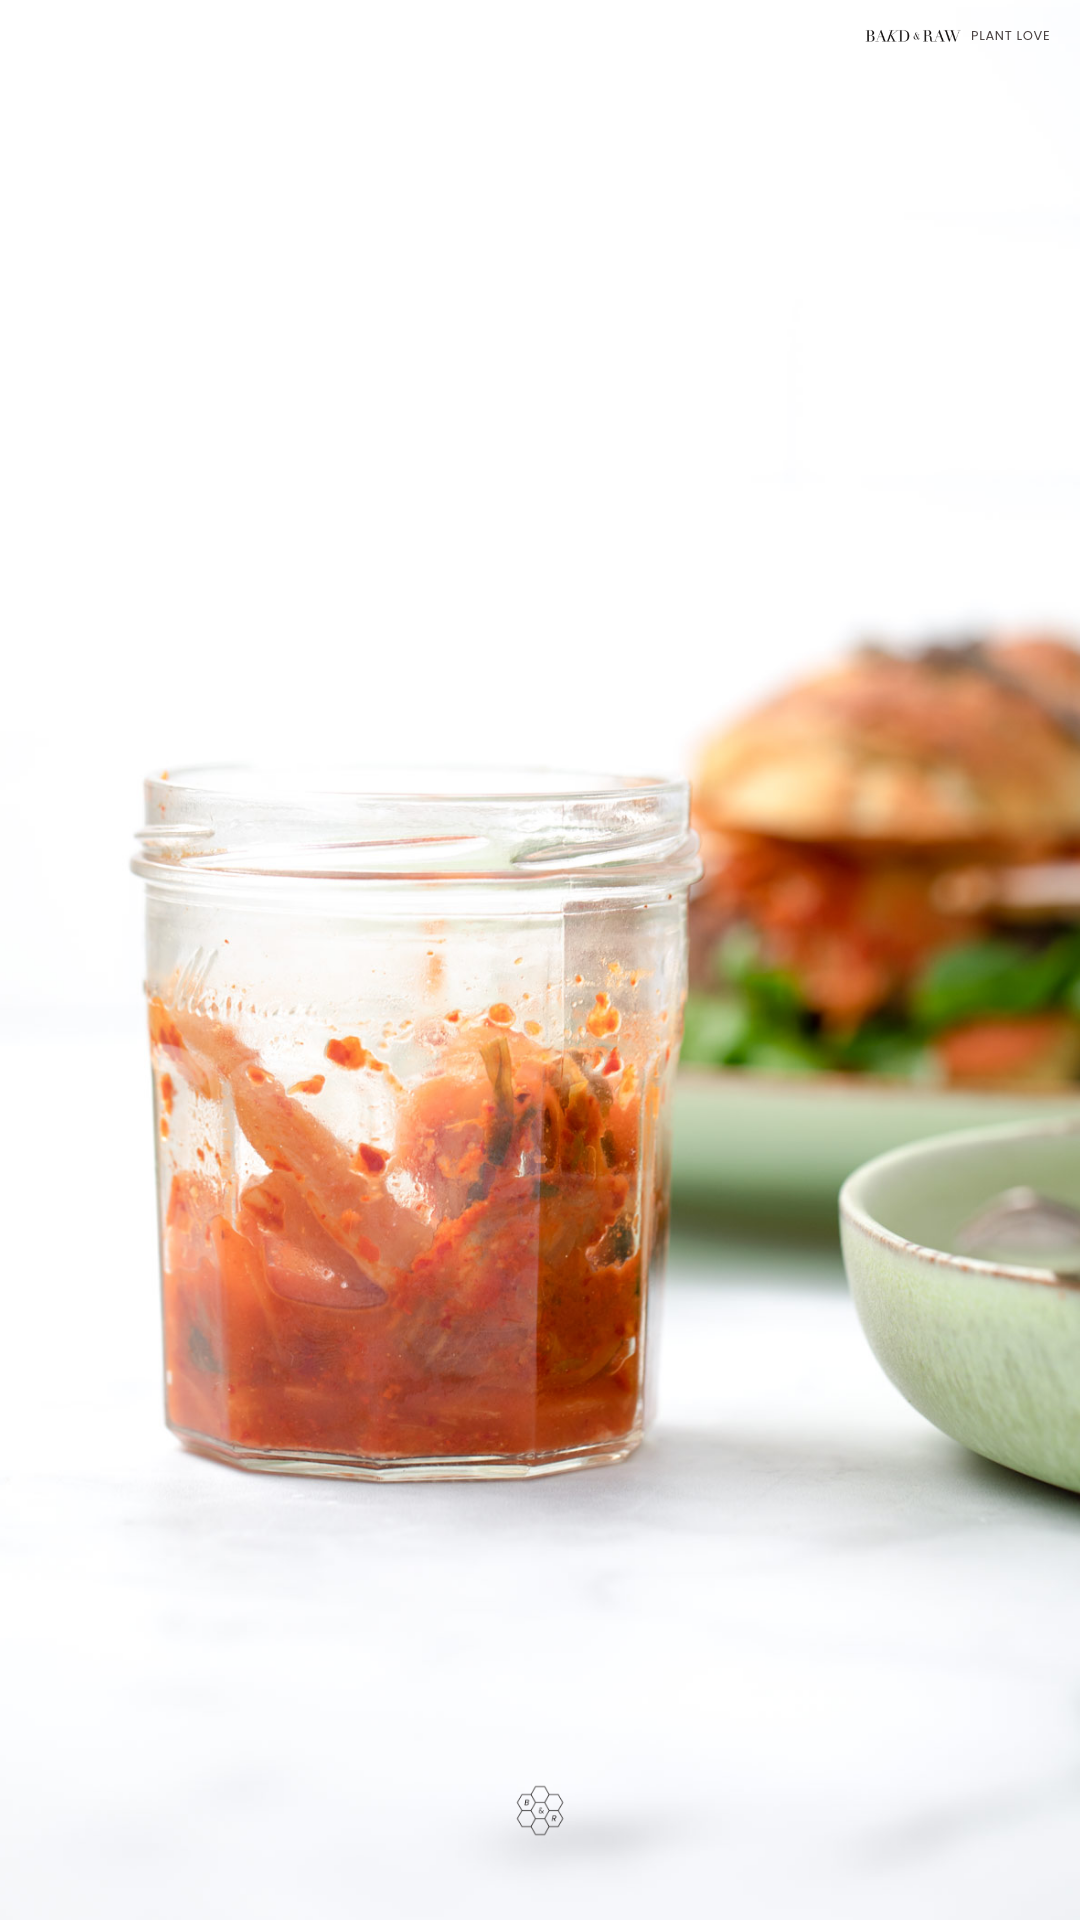 Kimchi as the perfect Black Bean burger topping by bakd&raw